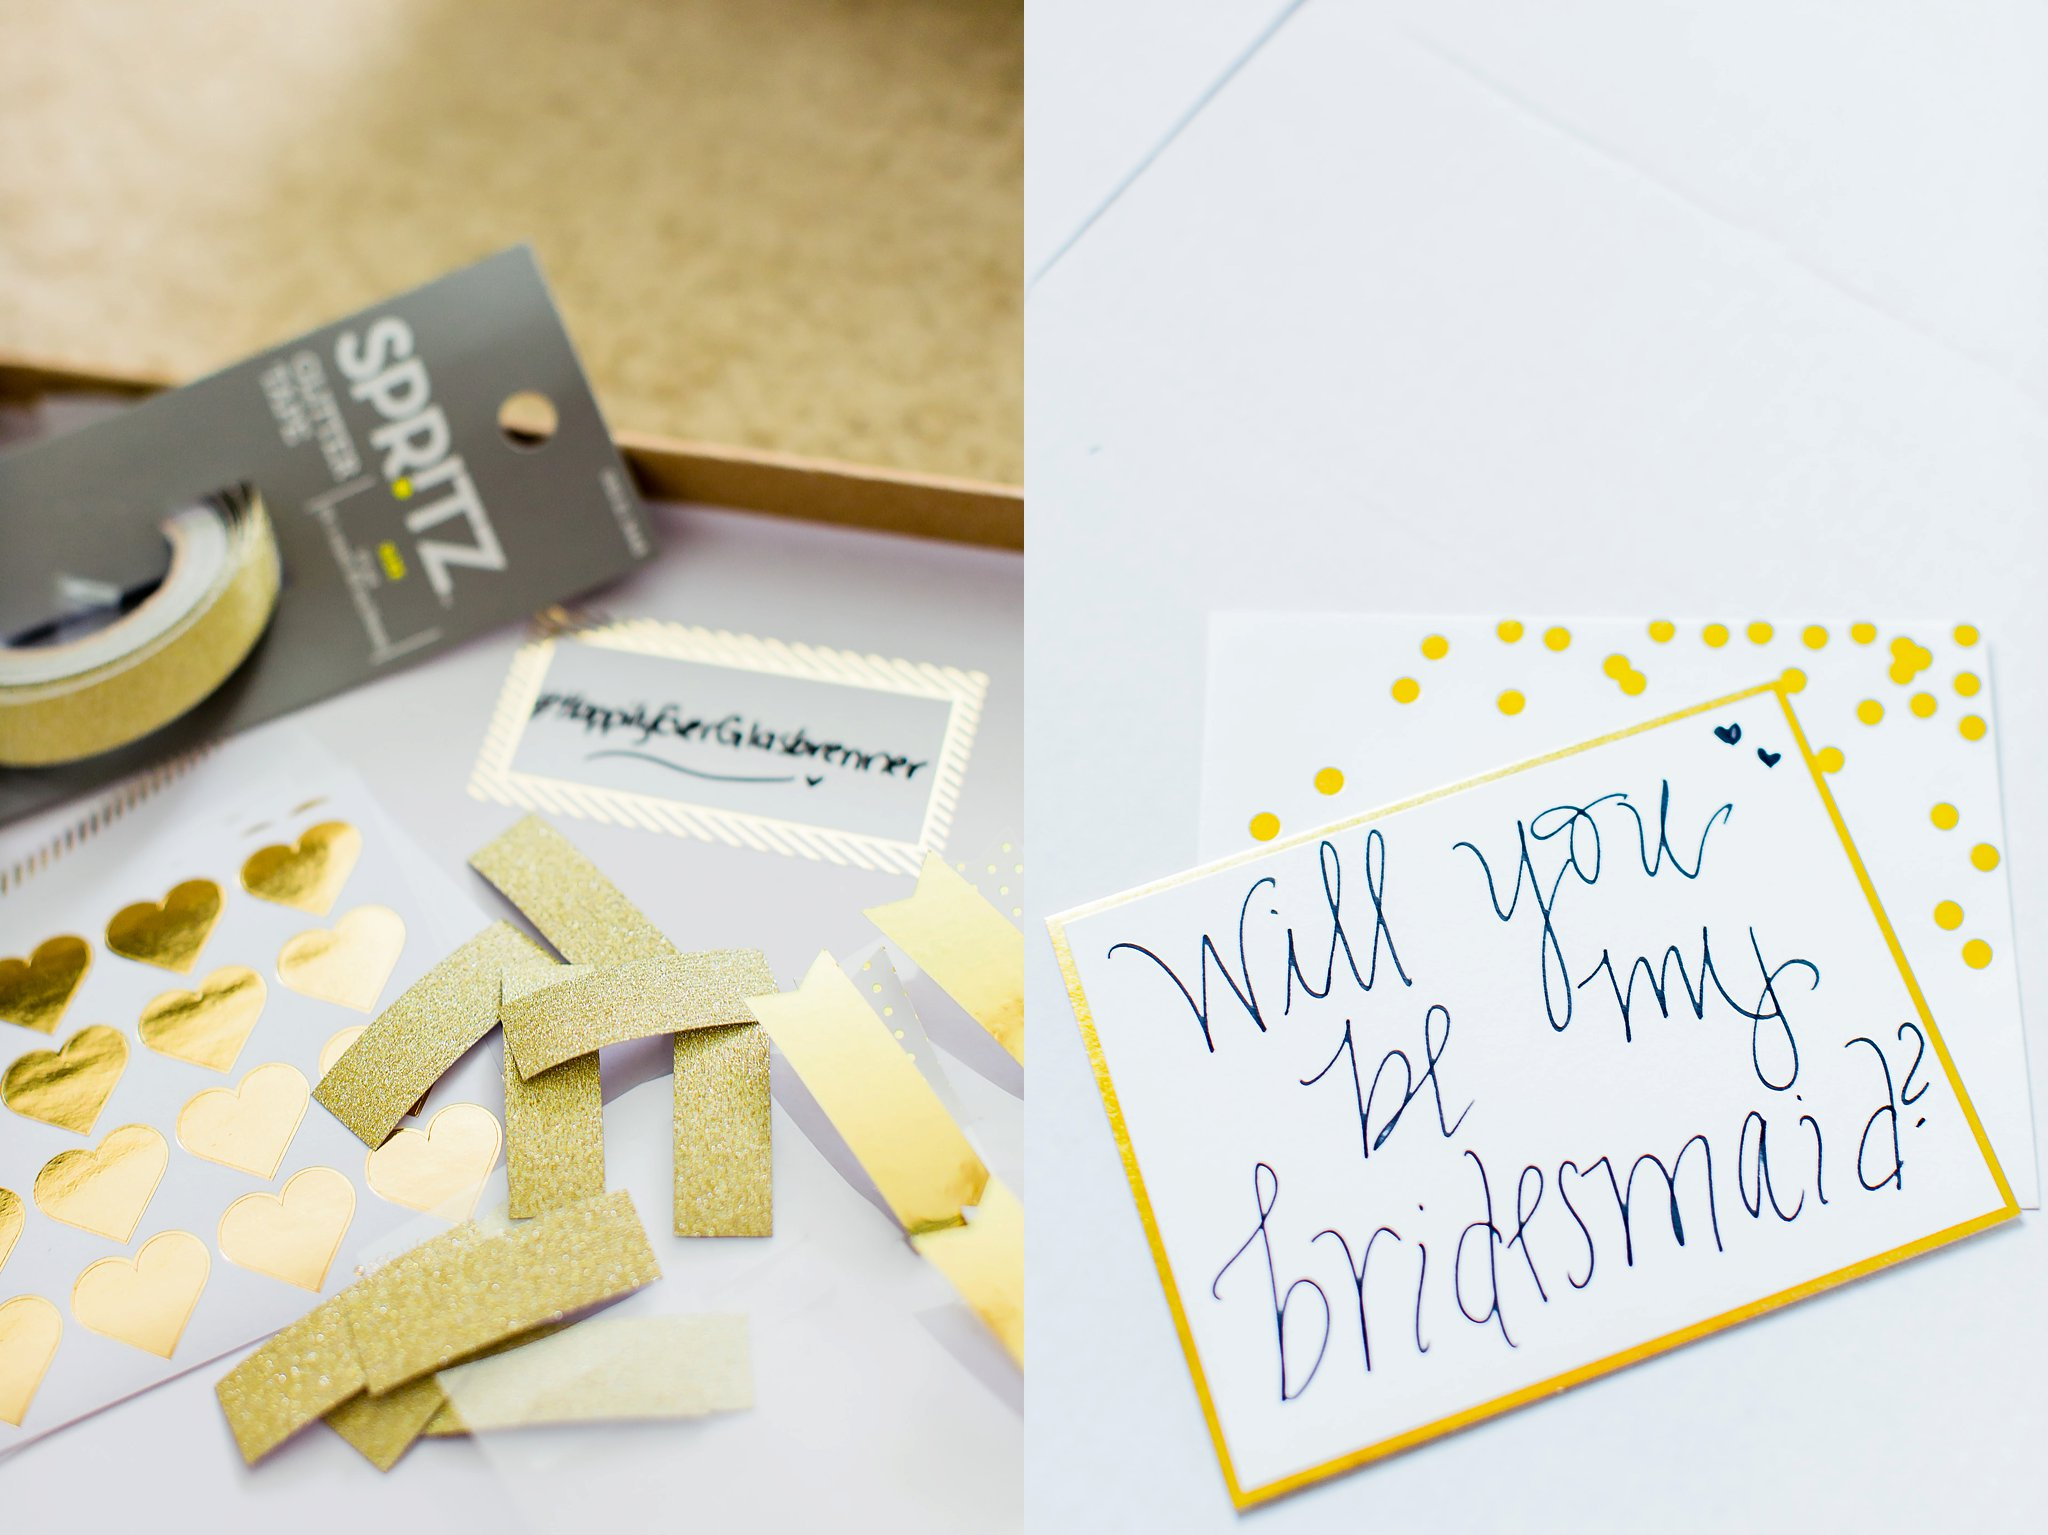 DIY Bridesmaid Proposal Will You Be My Bridesmaid Gift Wedding Planning-3081.jpg